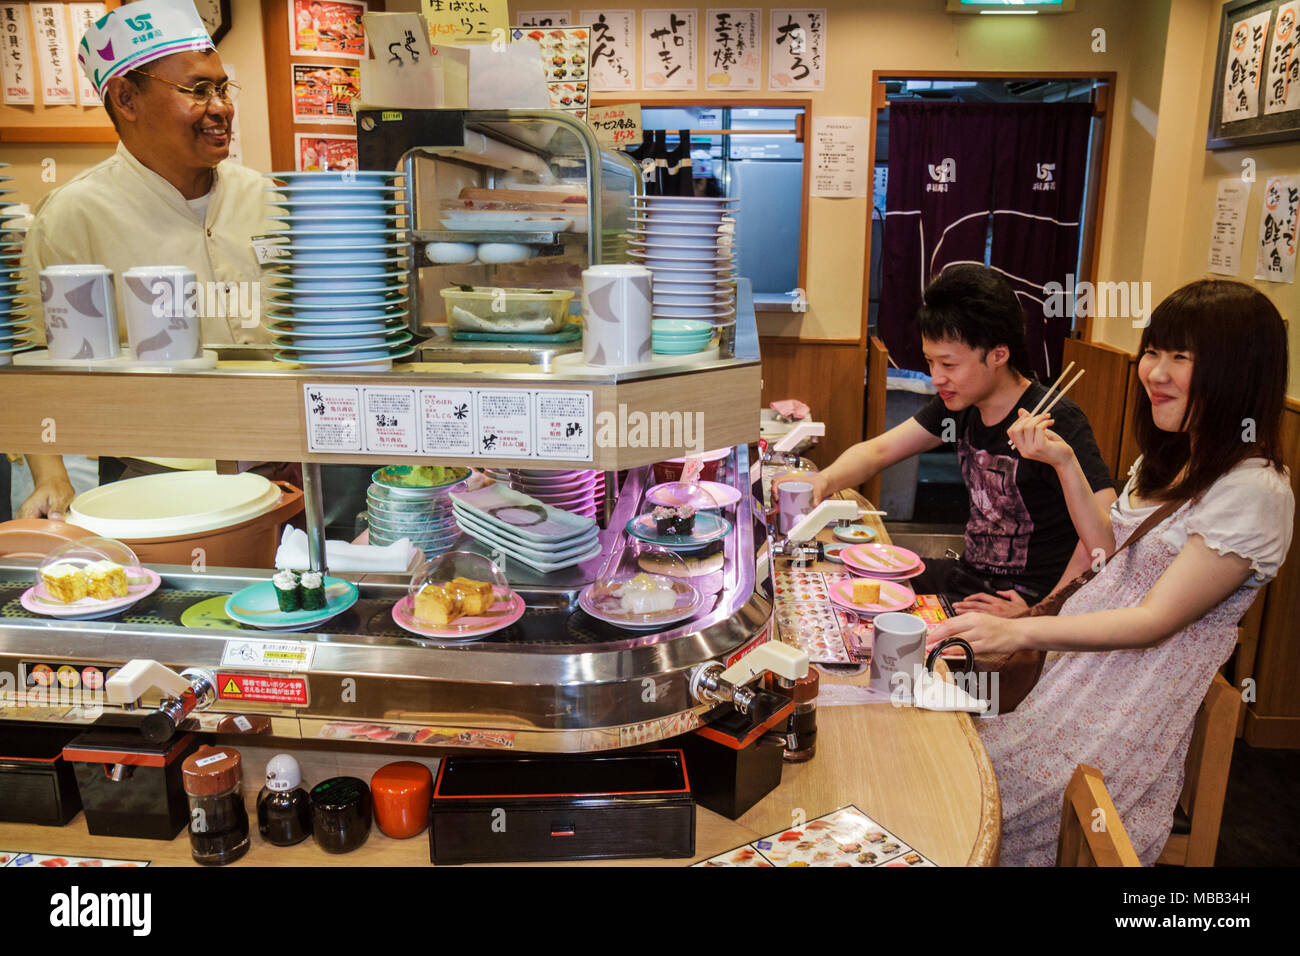 Tokyo Japan Ikebukuro kanji hiragana katakana characters sushi bar restaurant conveyor belt Asian man woman couple customers che - Stock Image